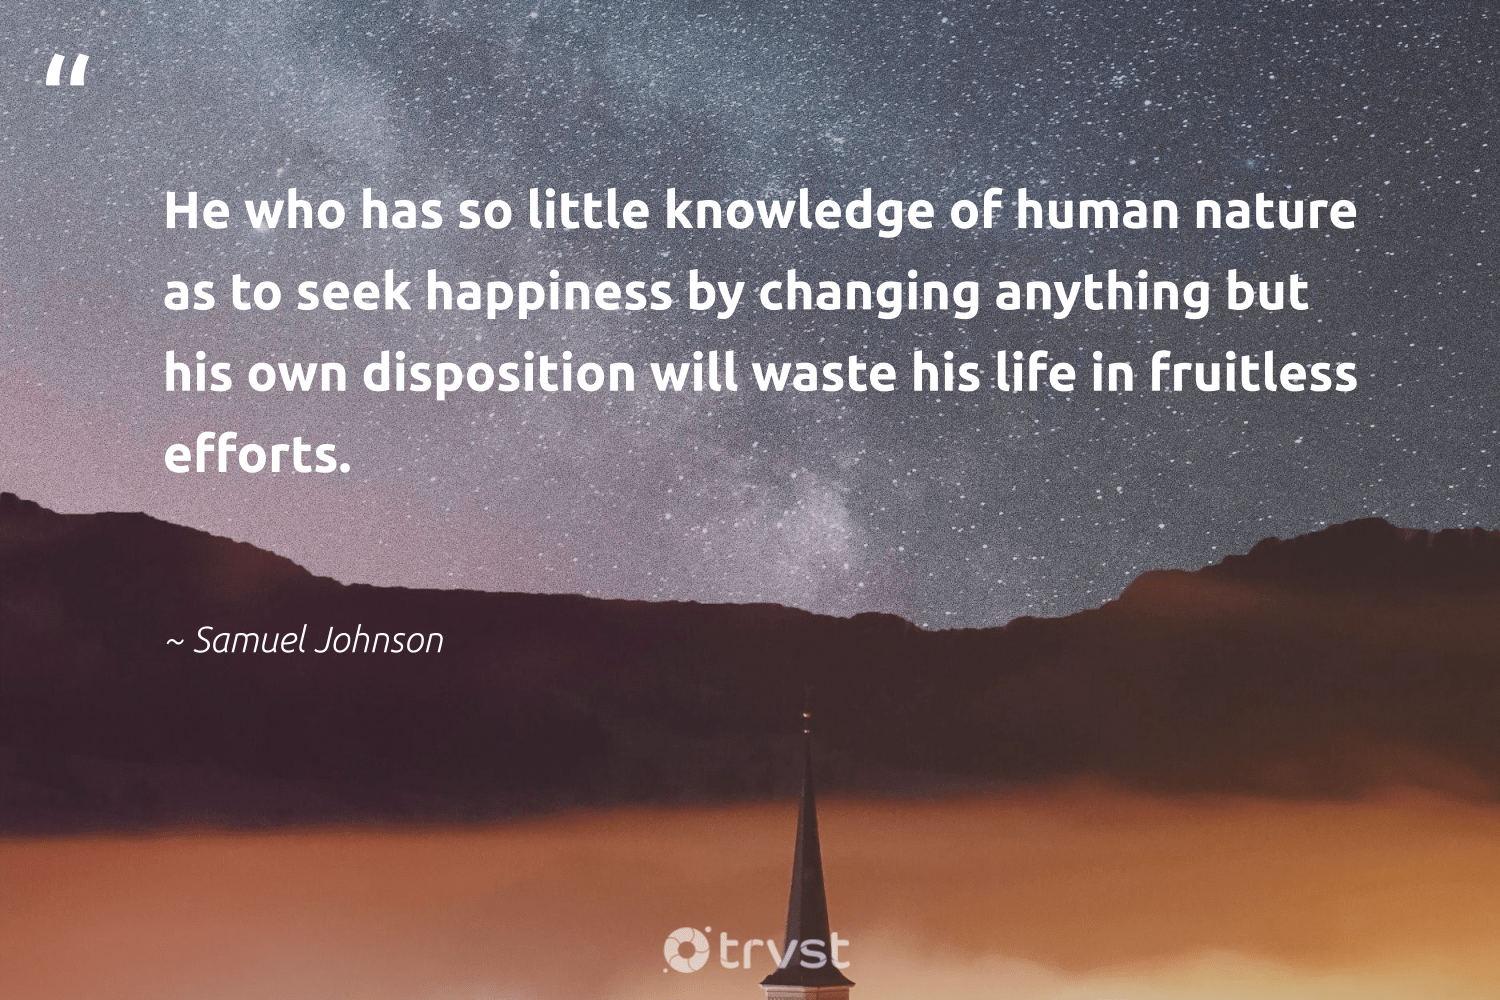 """He who has so little knowledge of human nature as to seek happiness by changing anything but his own disposition will waste his life in fruitless efforts.""  - Samuel Johnson #trvst #quotes #waste #nature #happiness #earth #health #sustainableliving #gogreen #environment #begreat #sustainability"